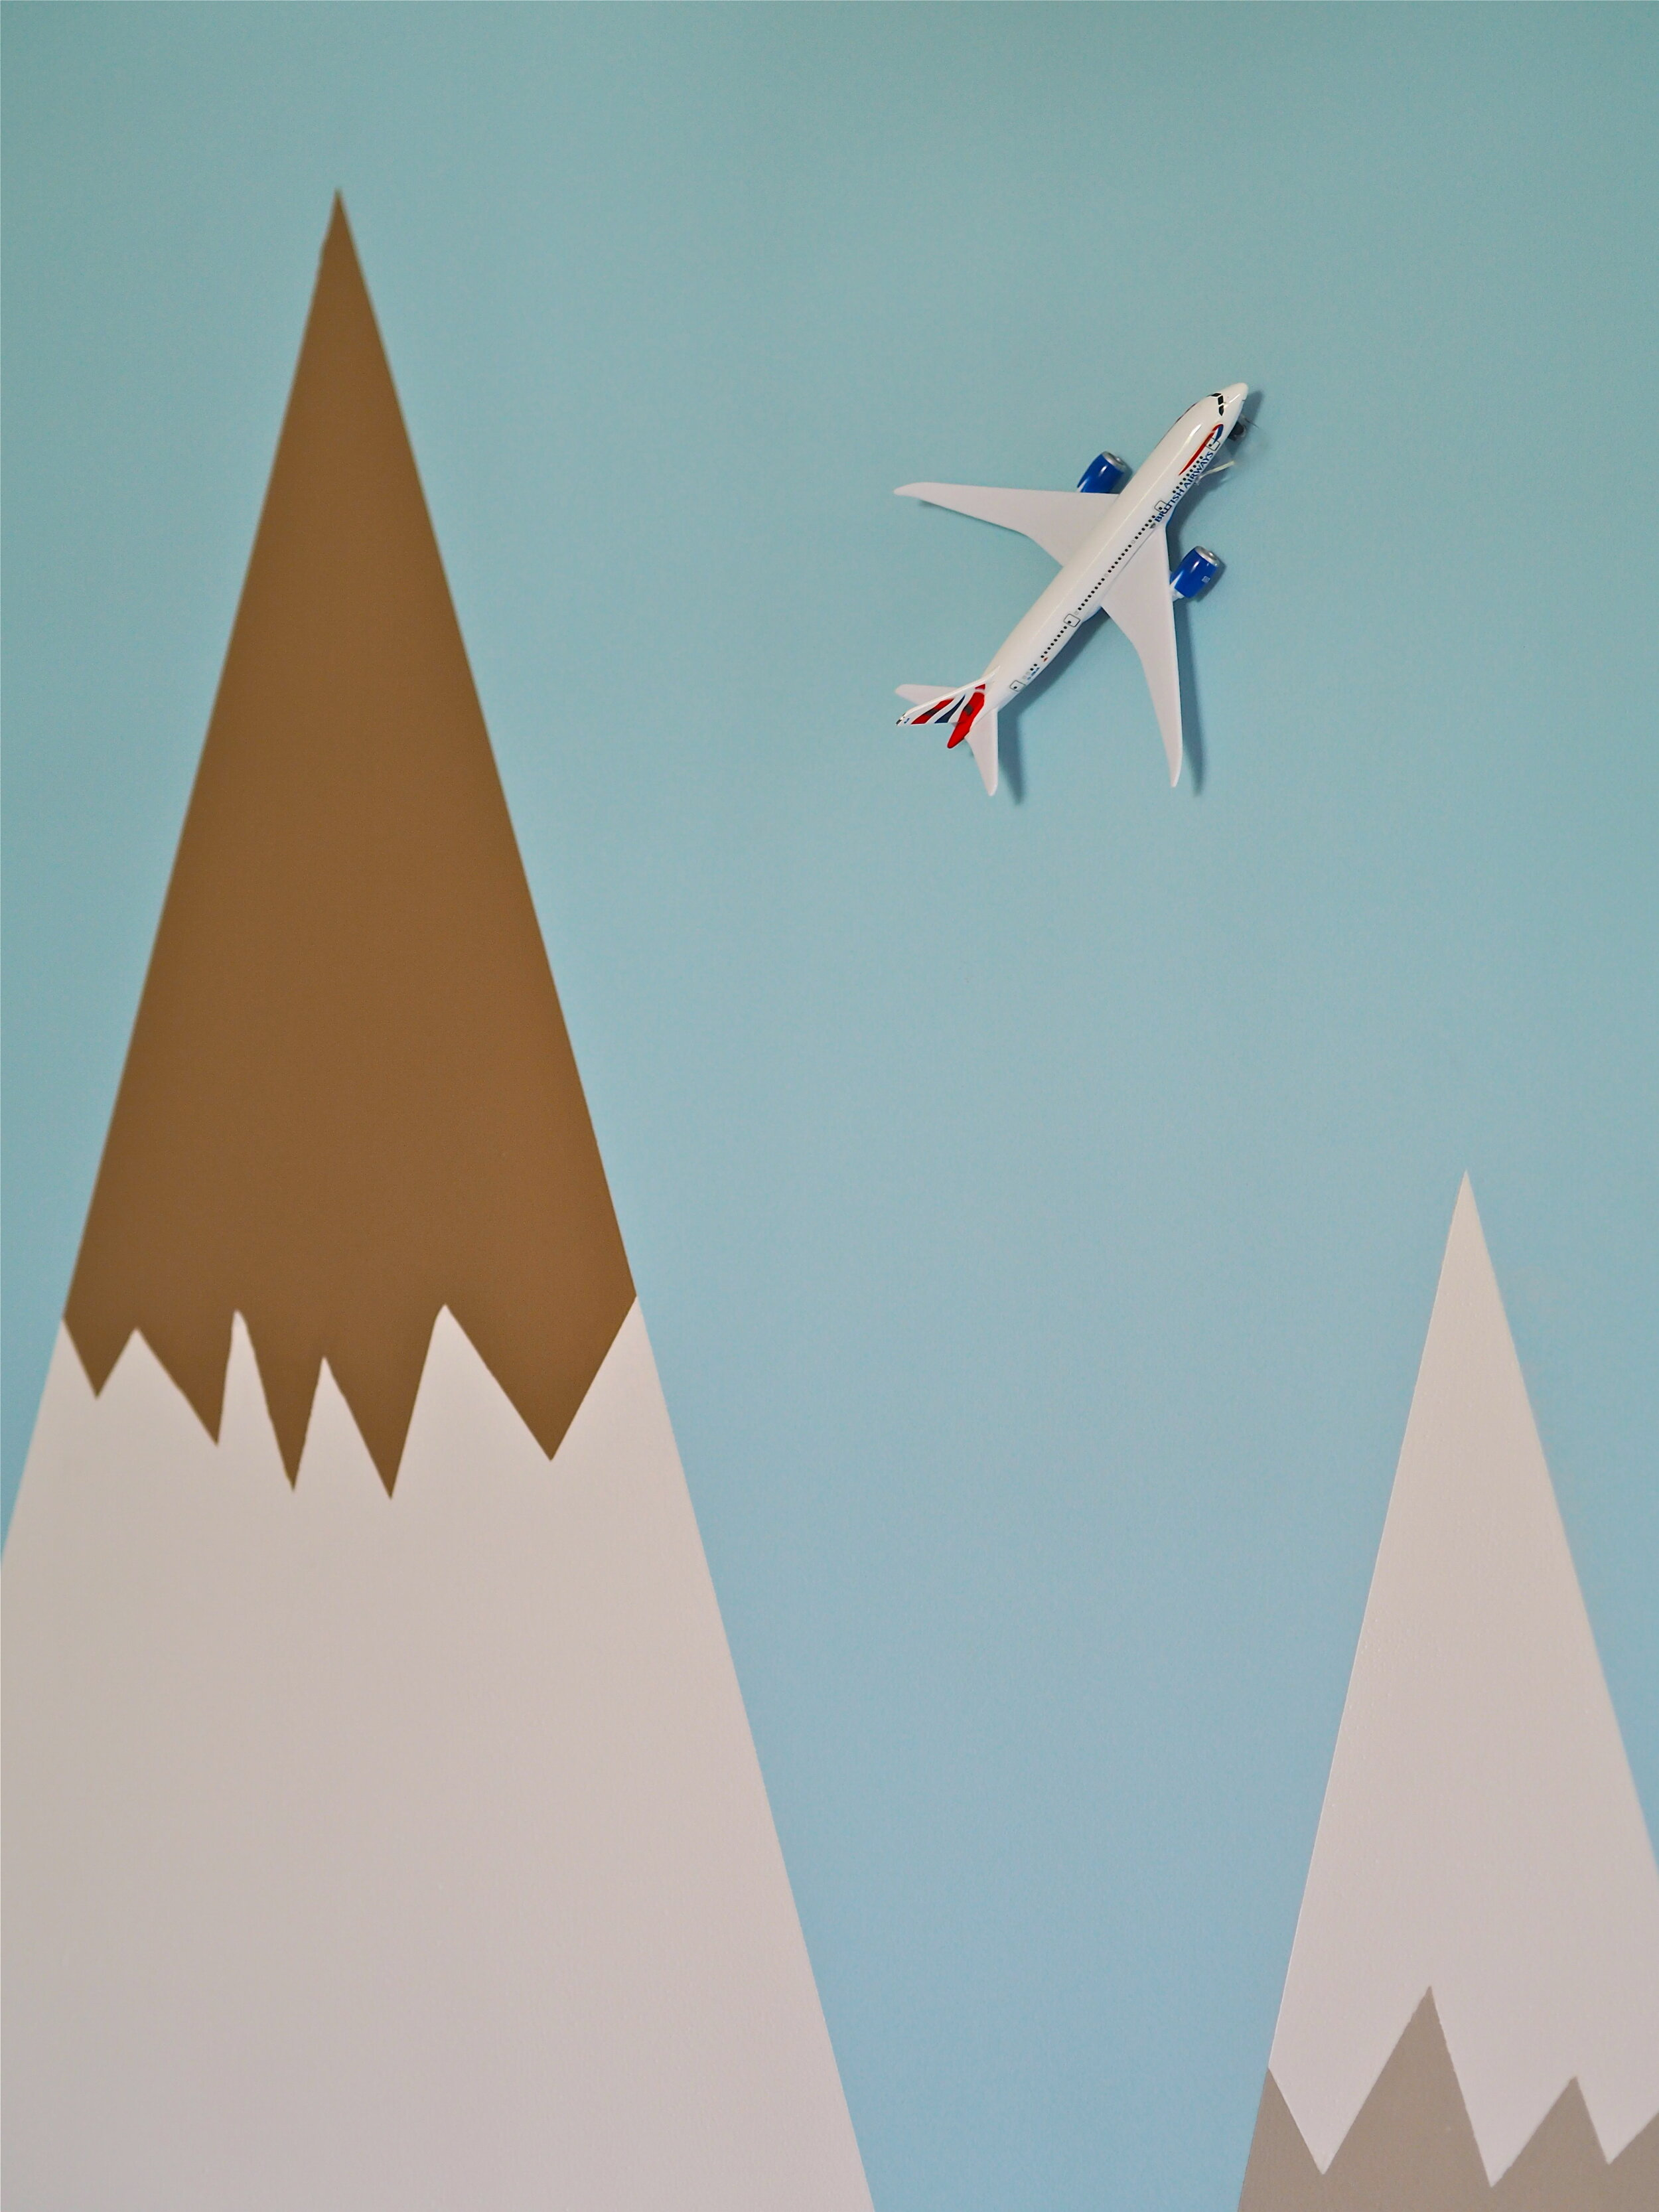 areoplane wall mural